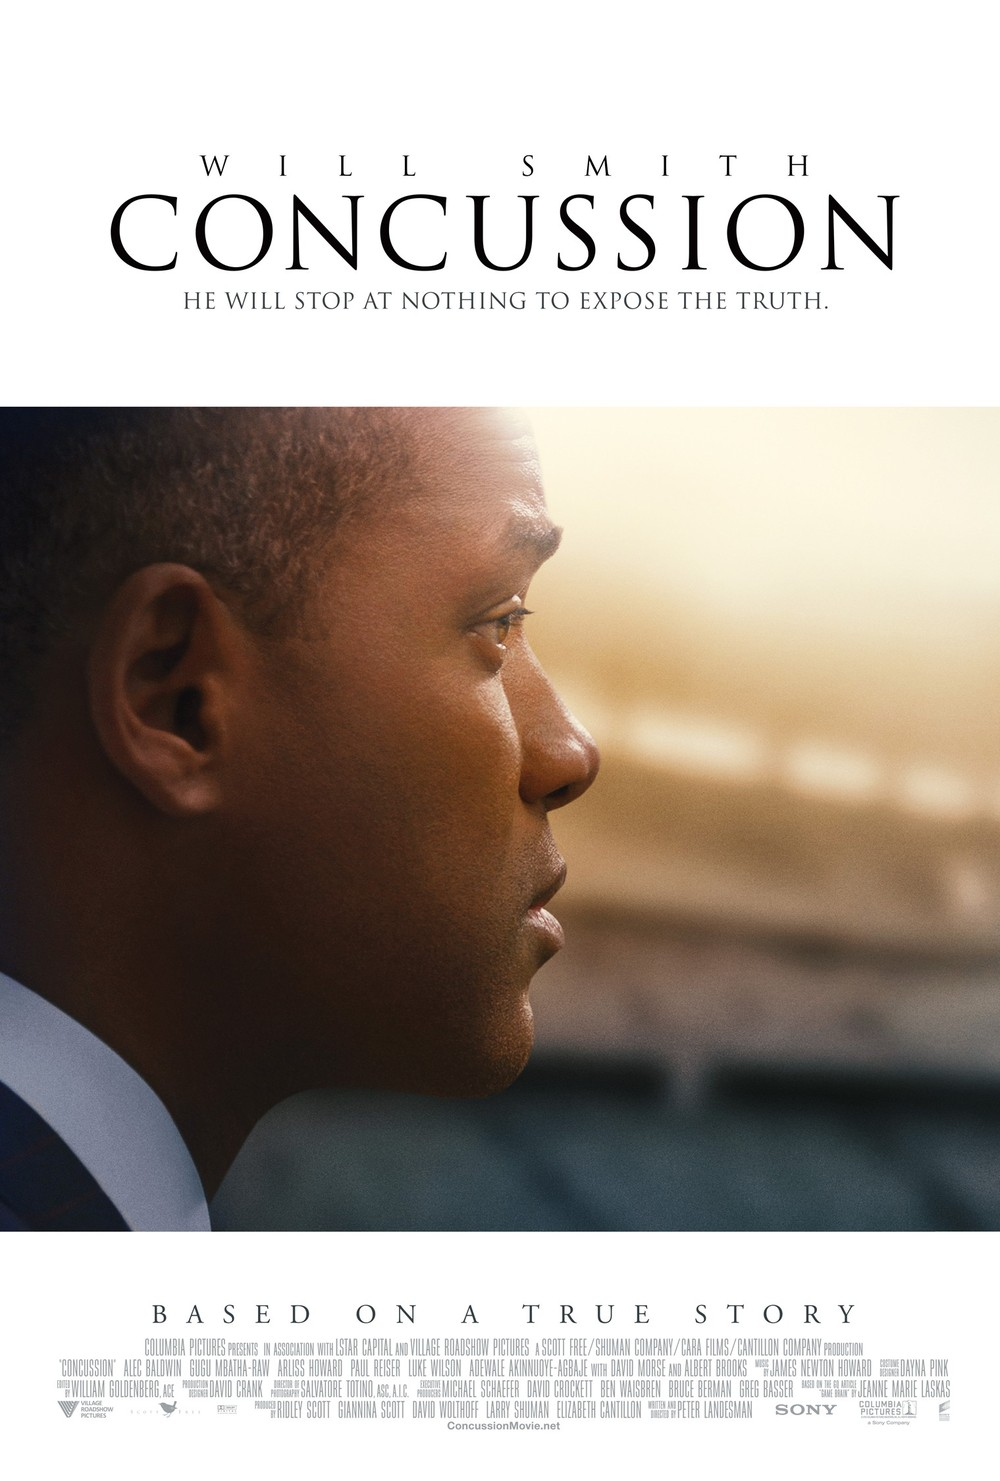 Concussion movie release date in Sydney